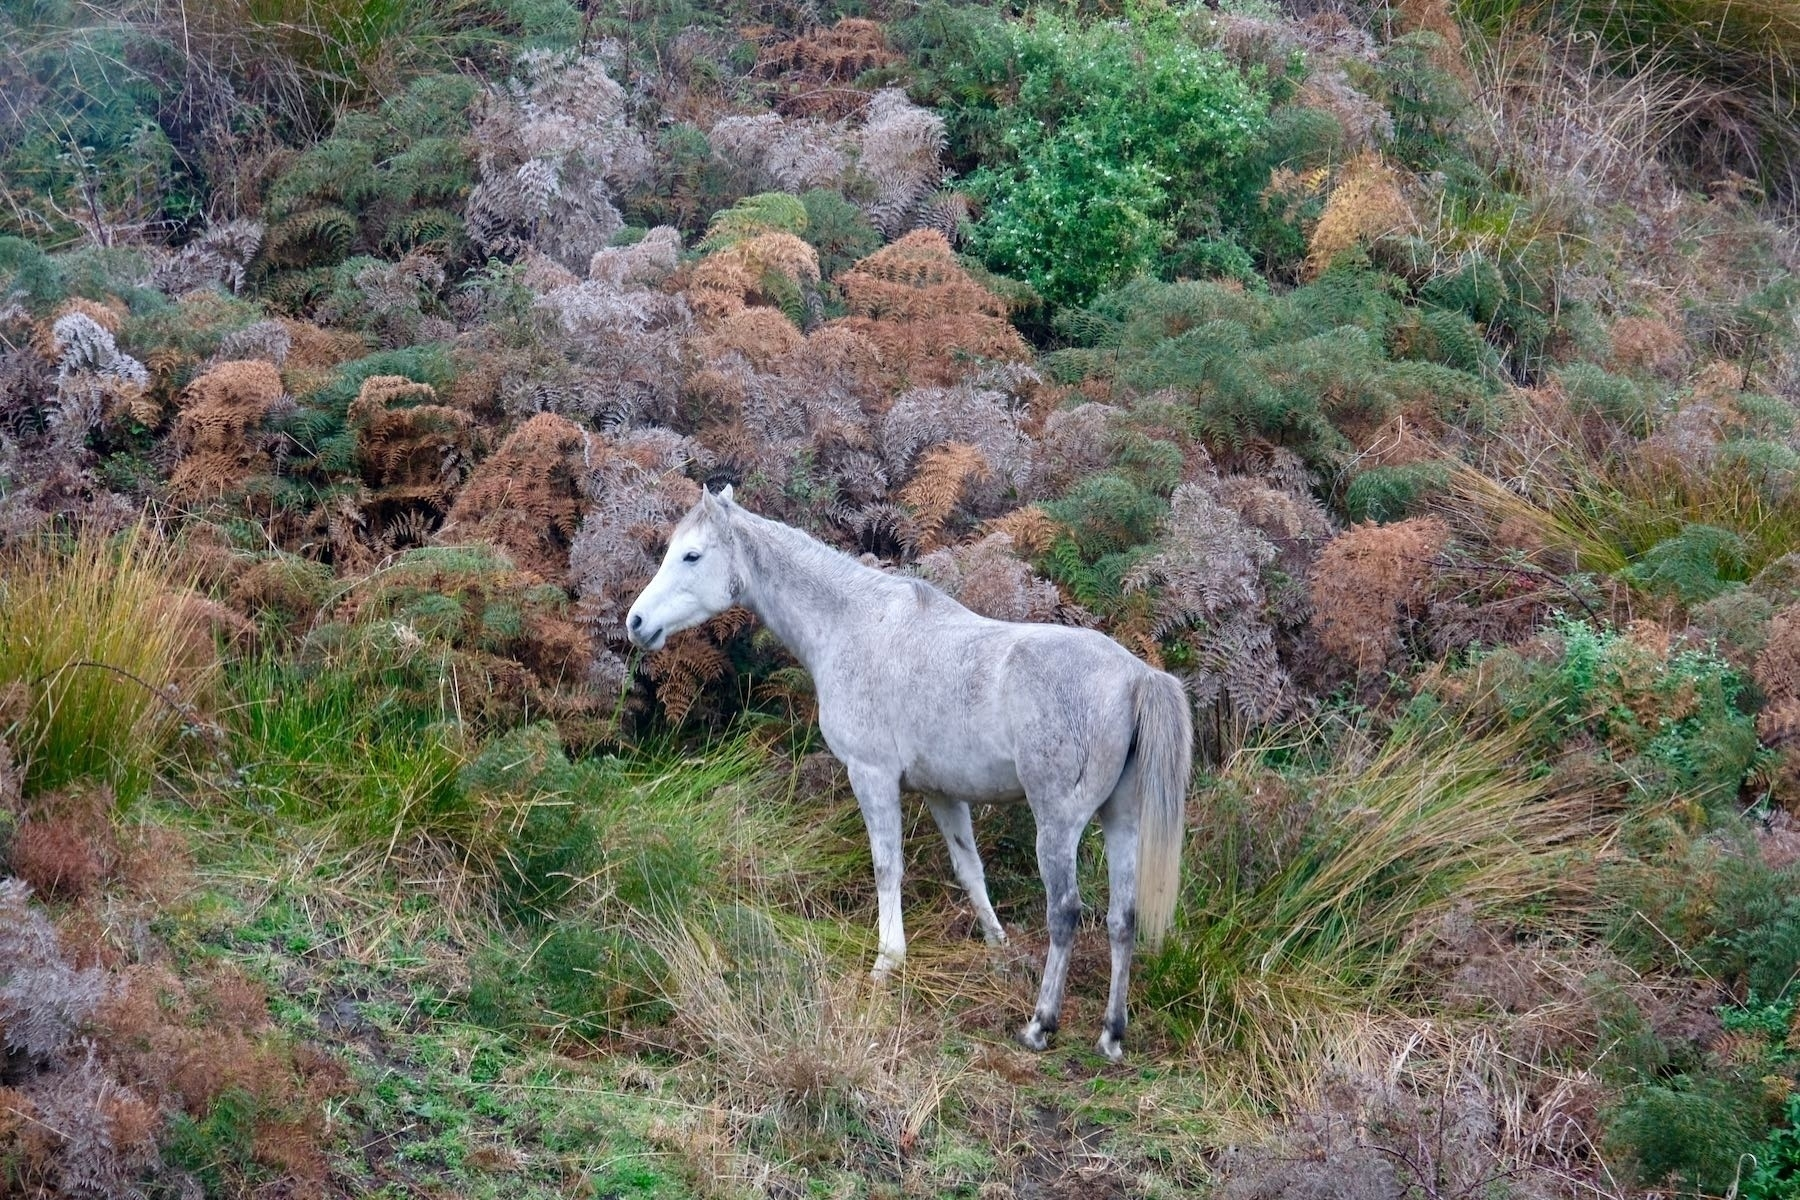 Grey and white horse amongst brown and green bracken.